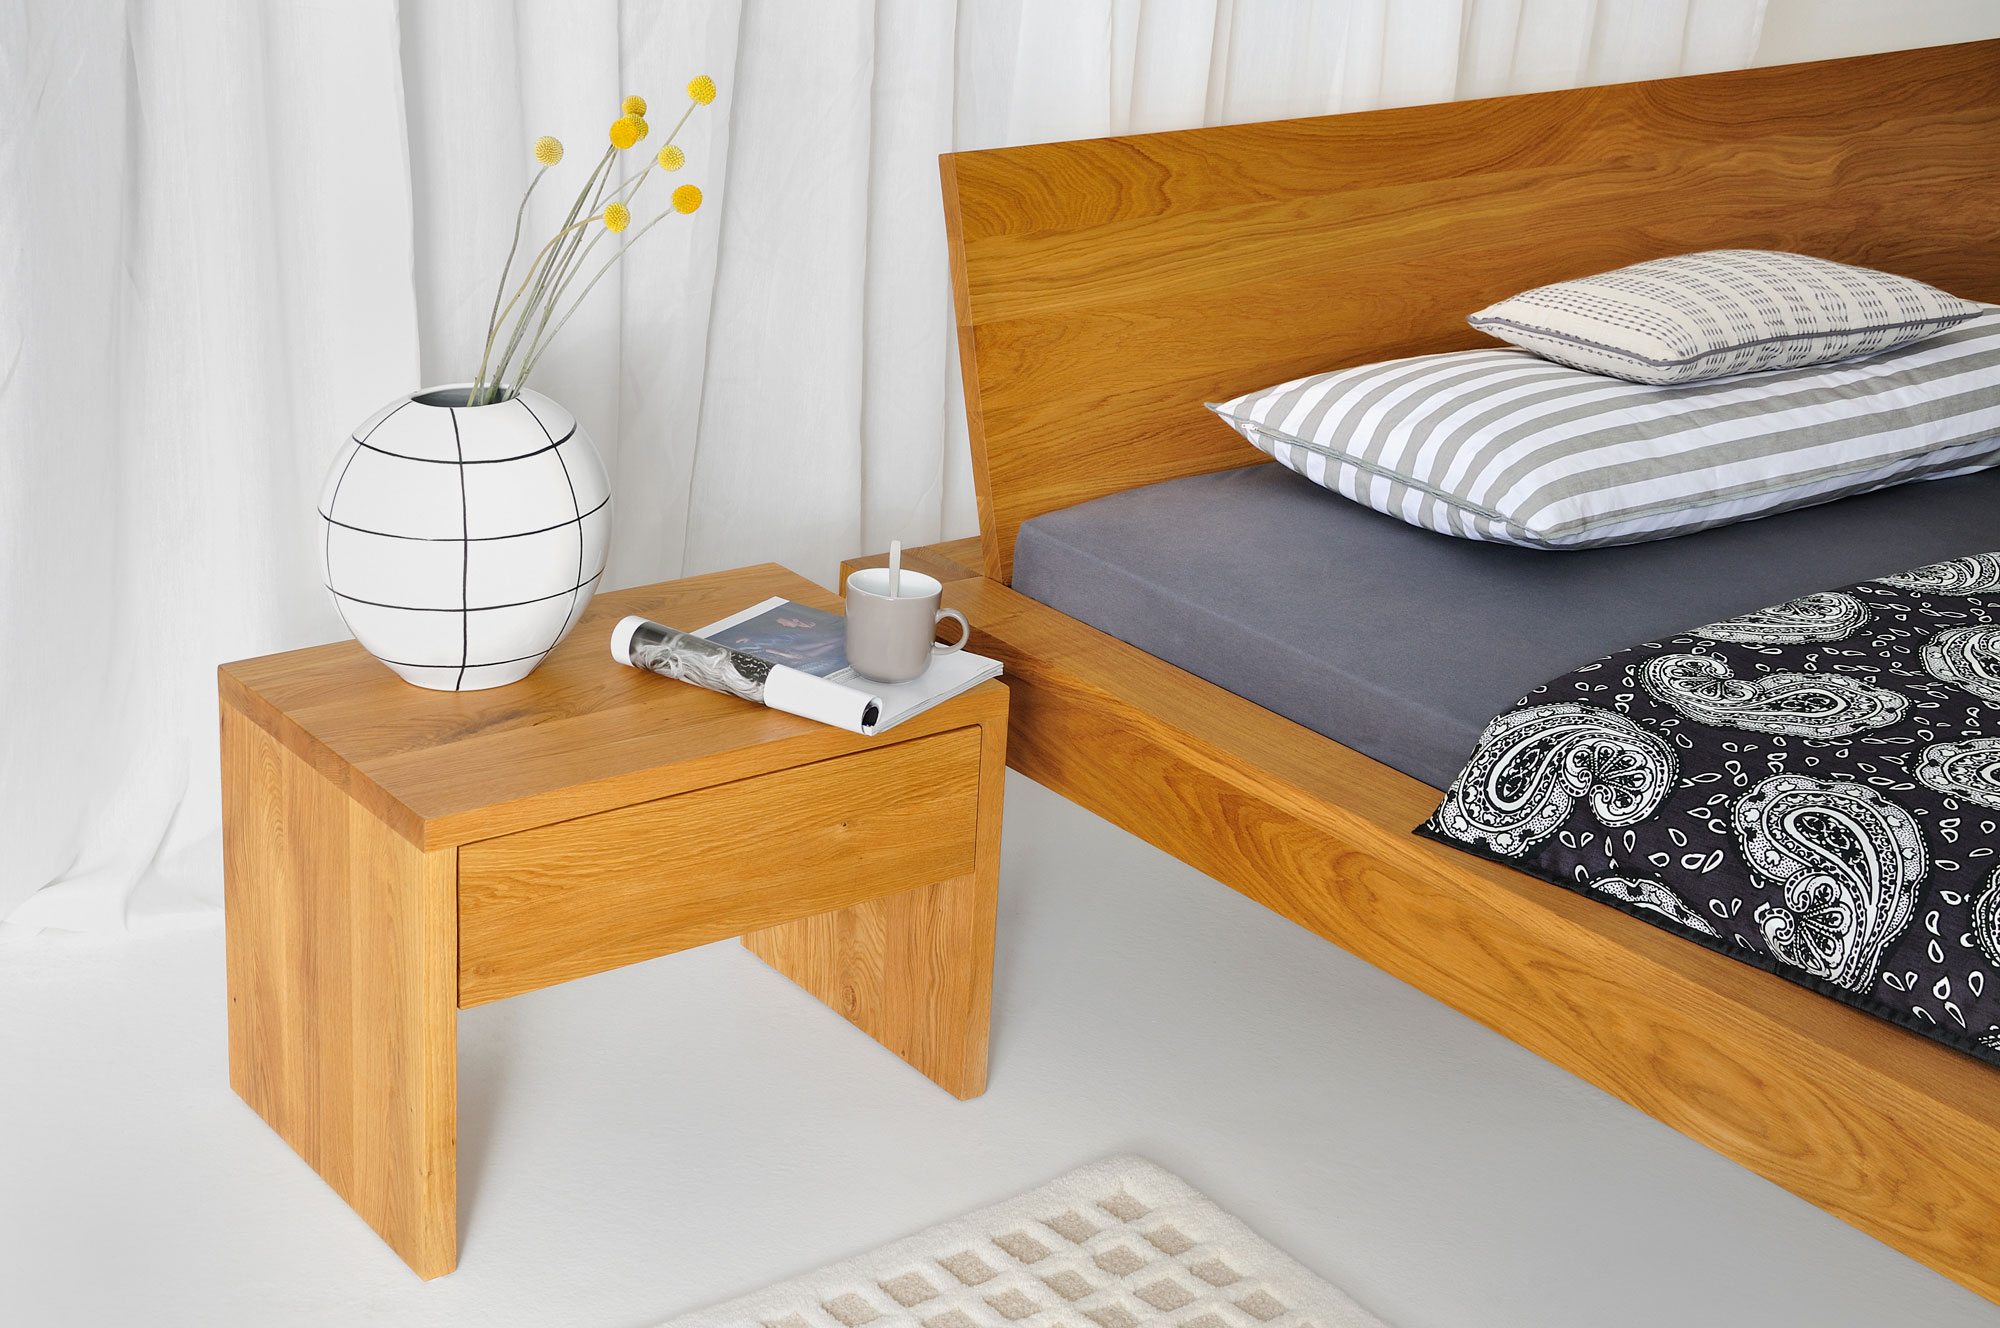 Rustic Oak Bed TAURUS 6328 custom made in solid wood by vitamin design